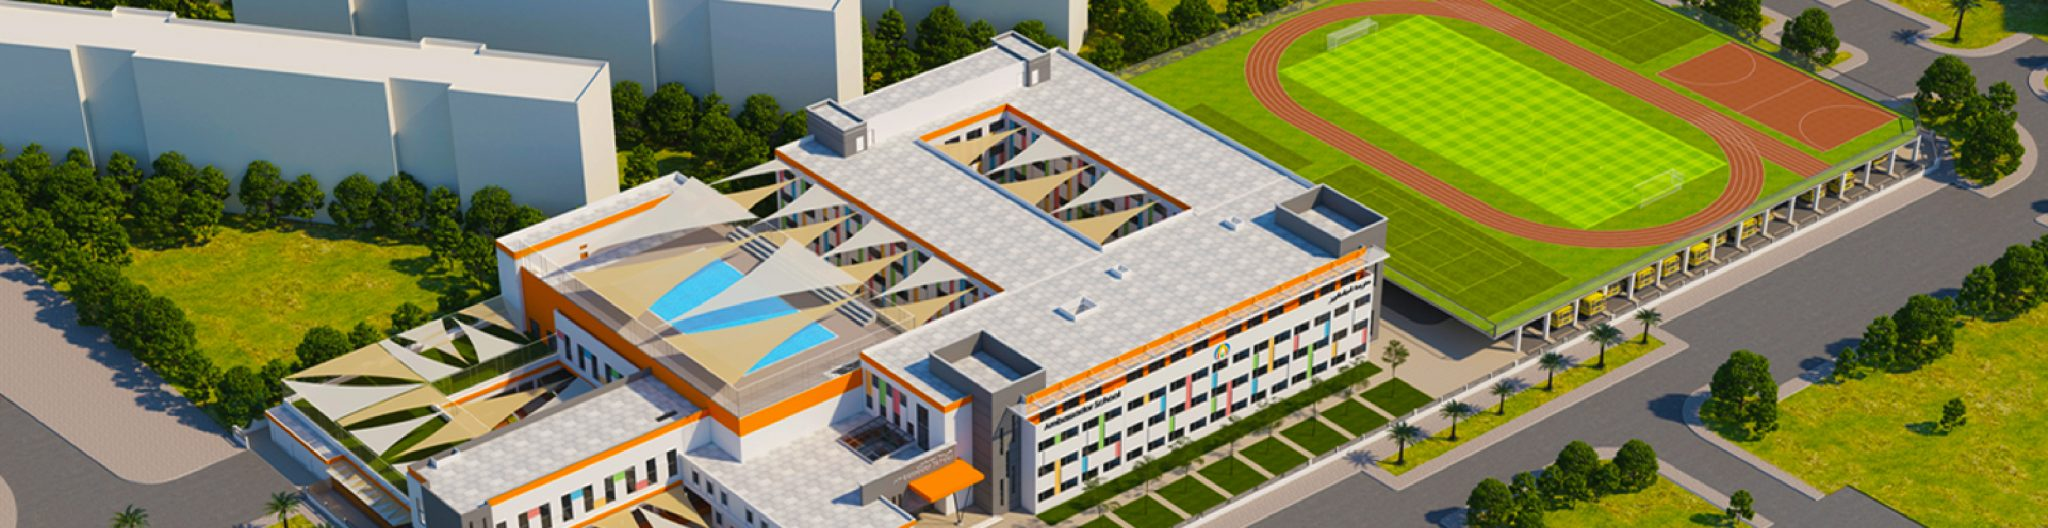 A render of the new Ambassador School Dubai campus opening in September 2018 in Al Khail Gate